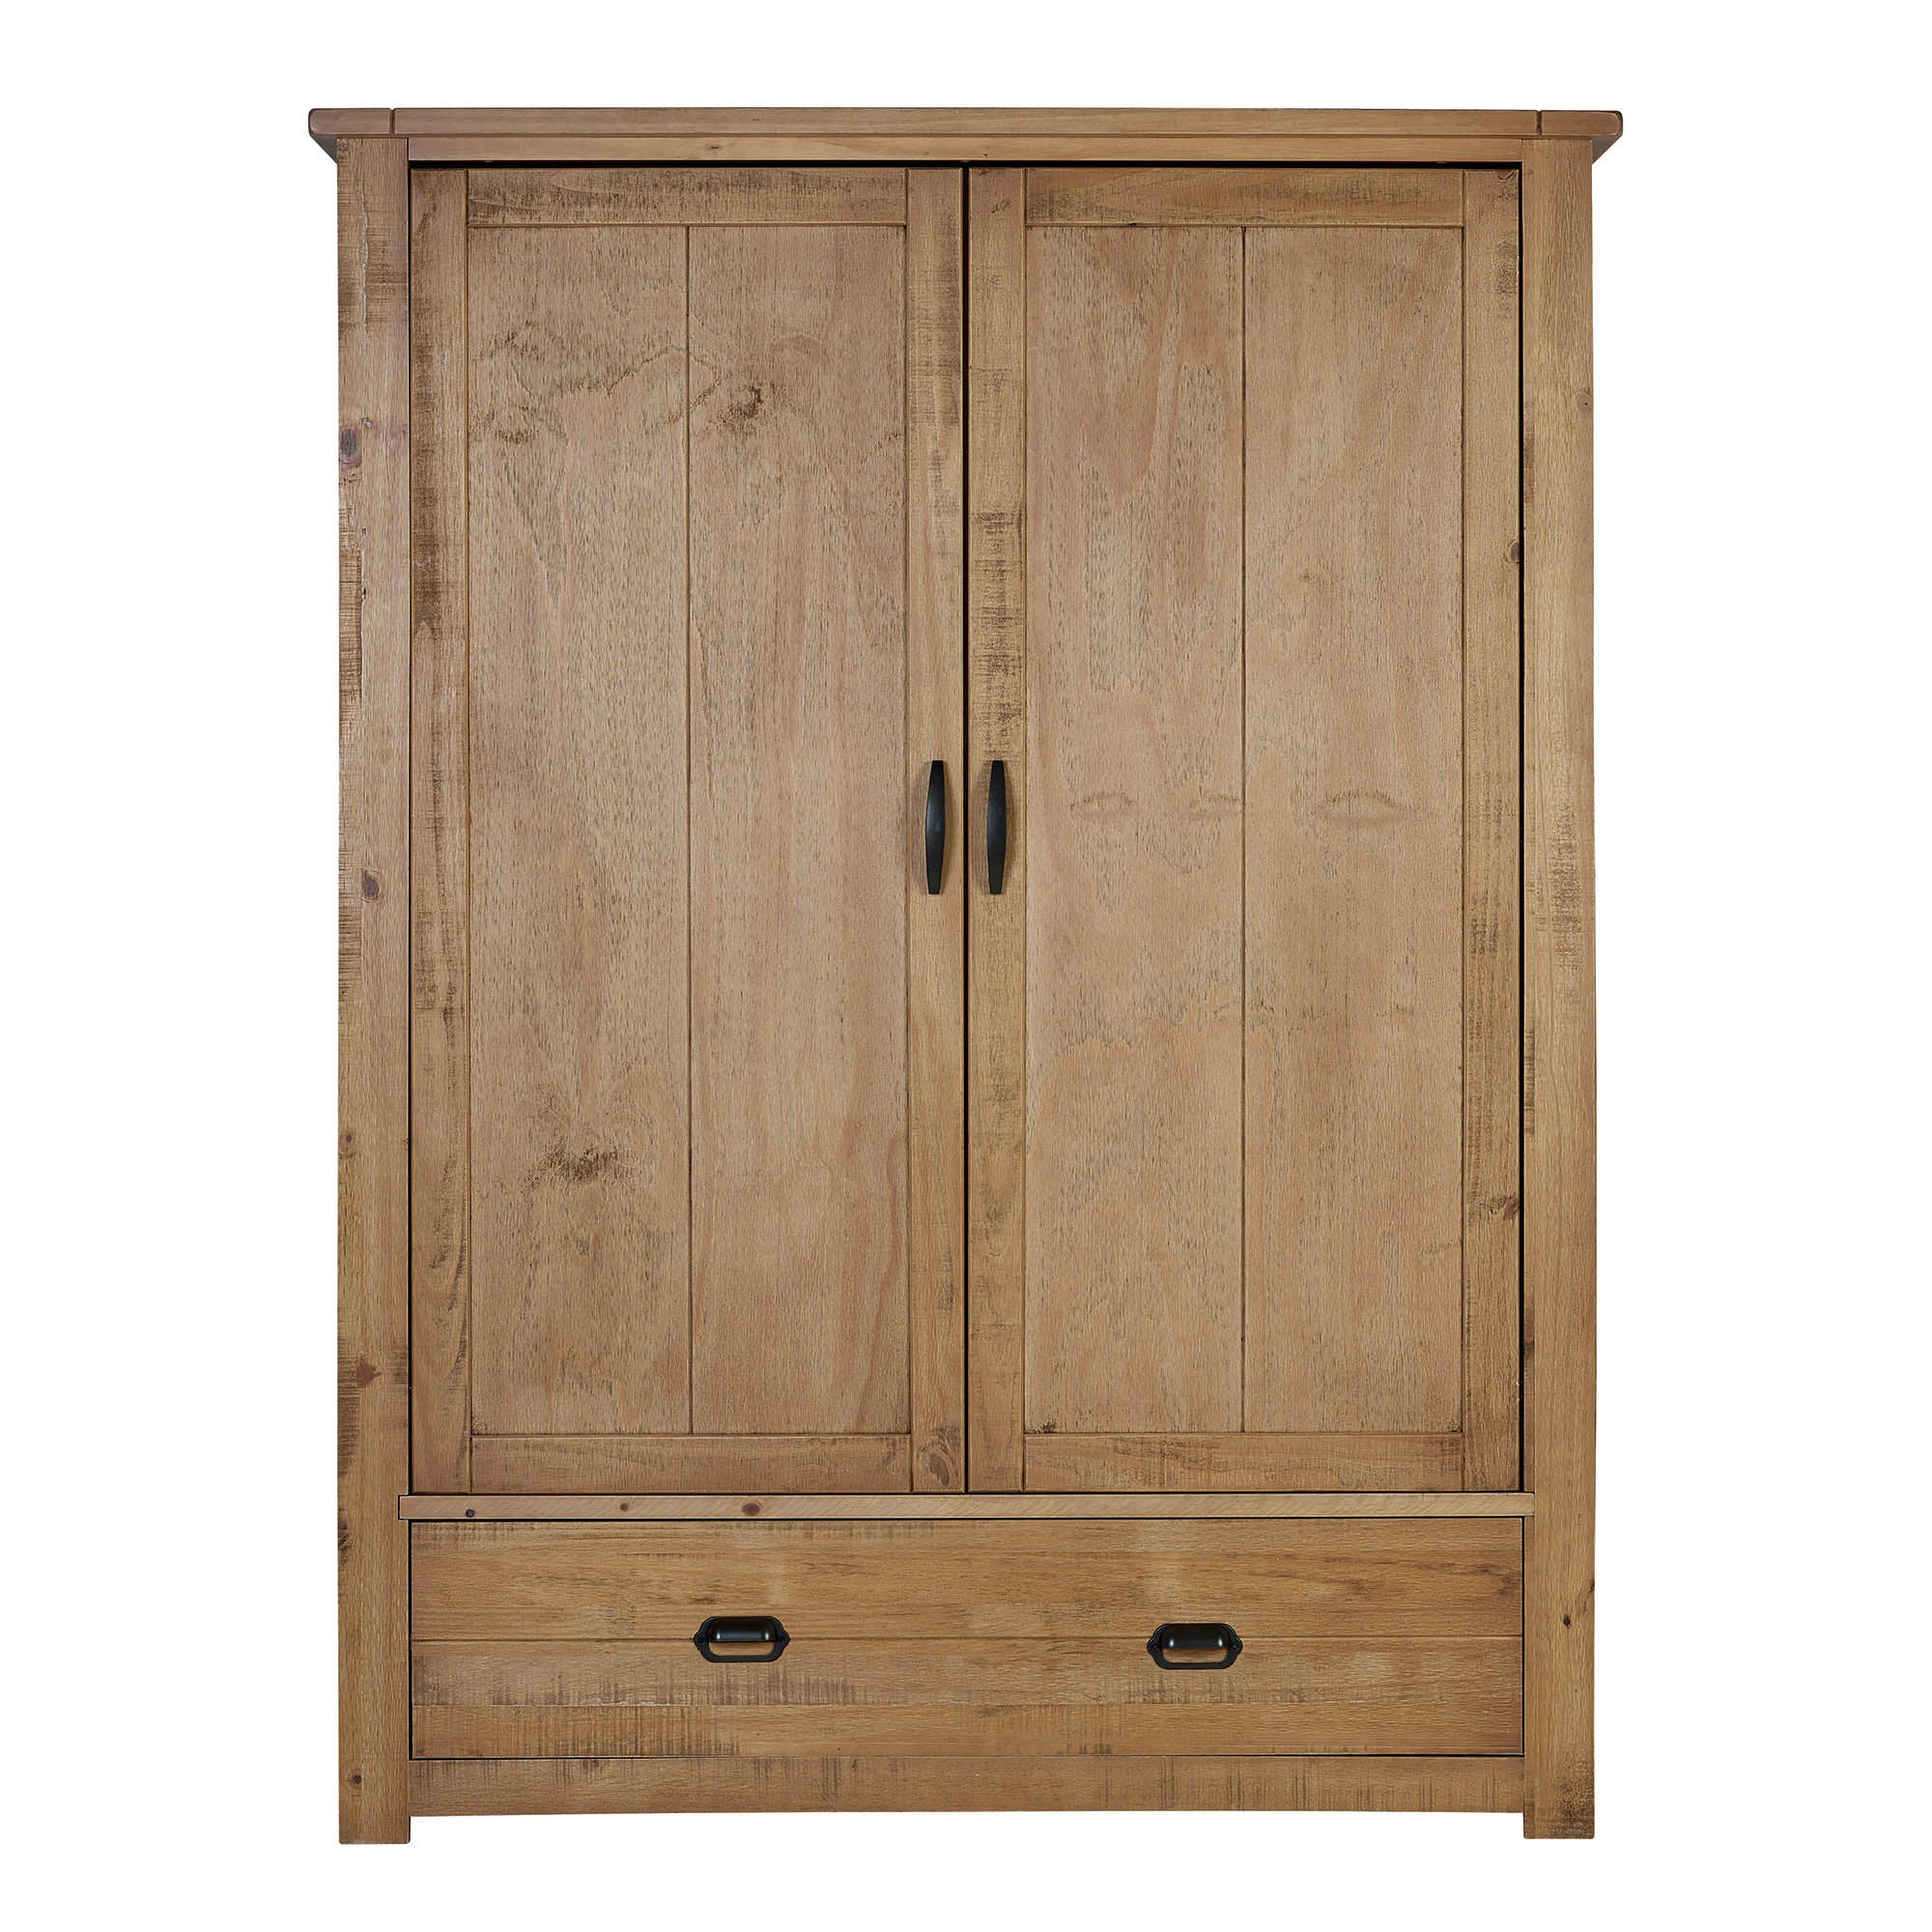 Photo of Fenton pine gents wardrobe brown